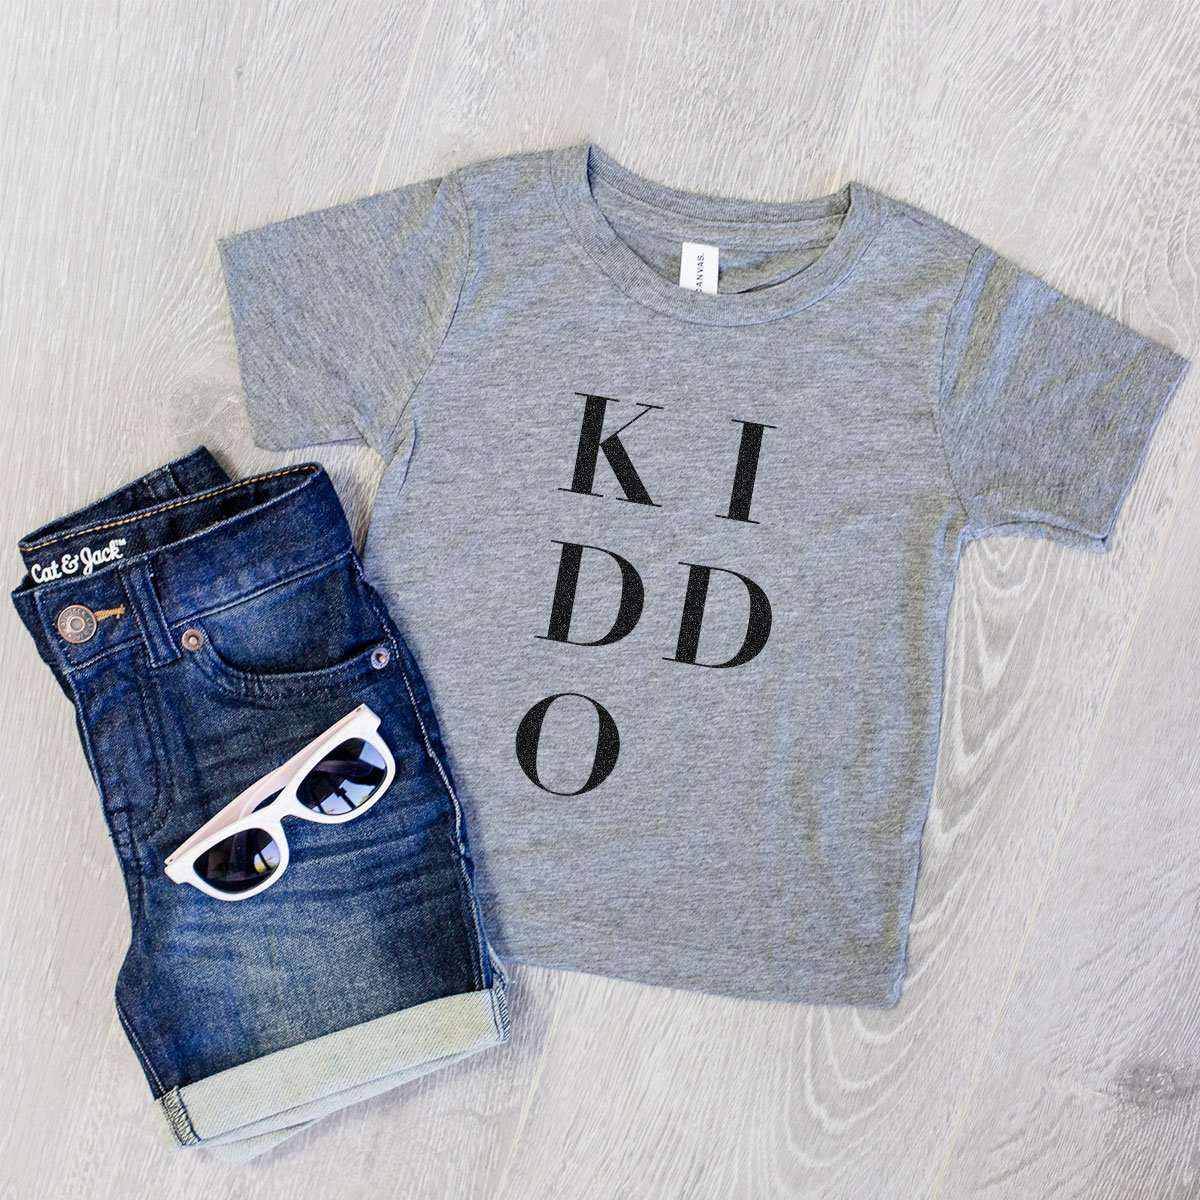 Kiddo Stacked - Kids/Youth/Toddler Shirt